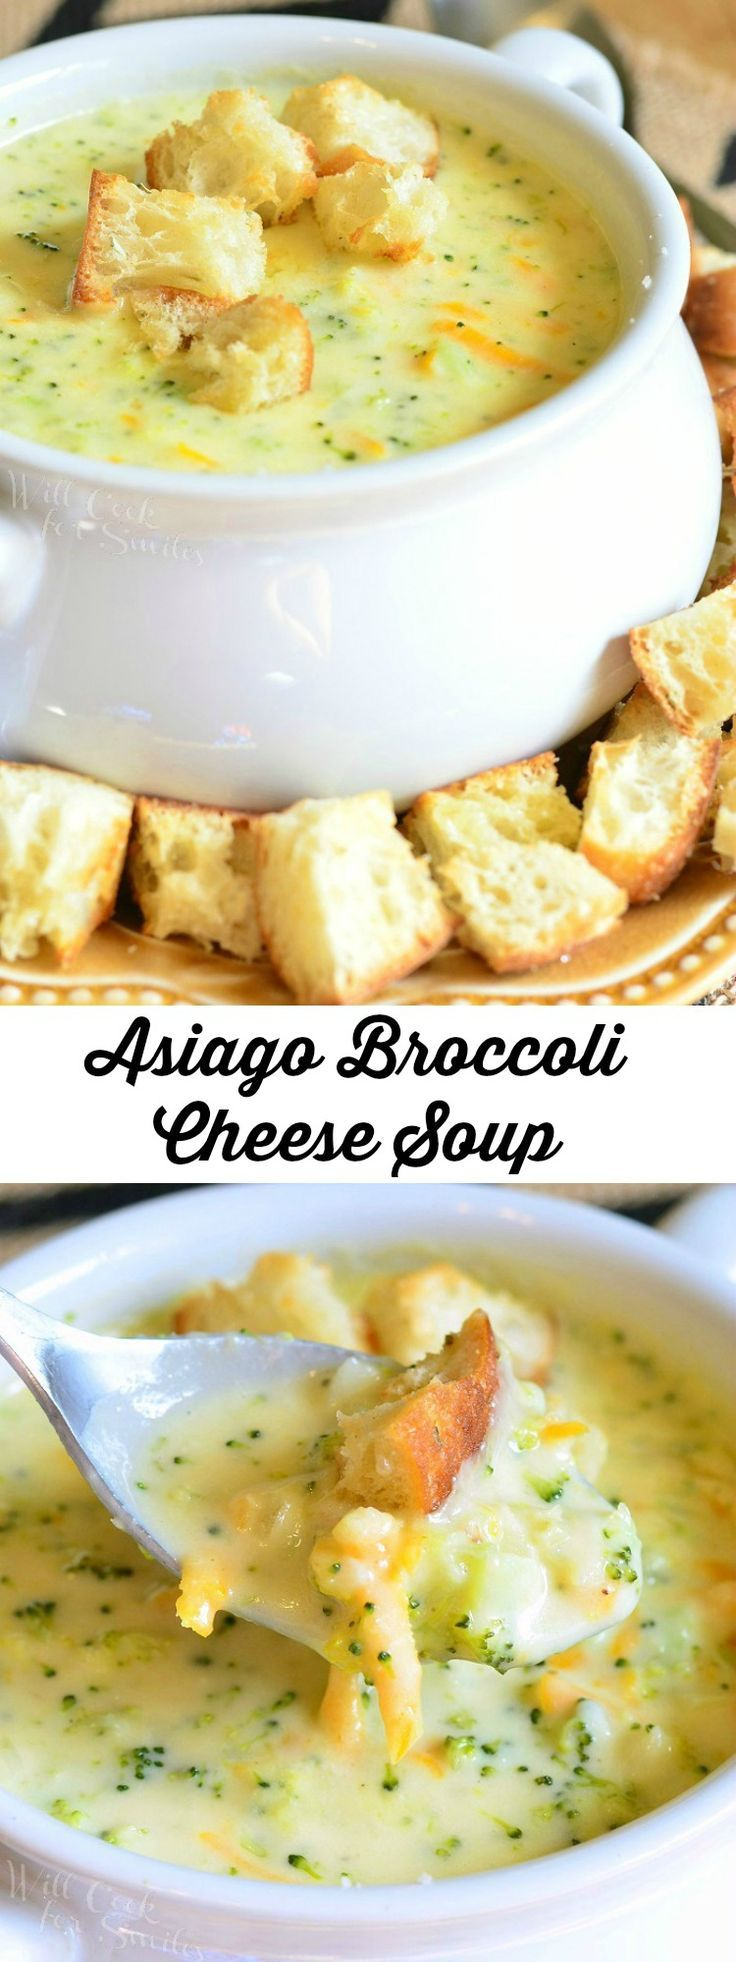 Asiago Broccoli Cheese Soup :